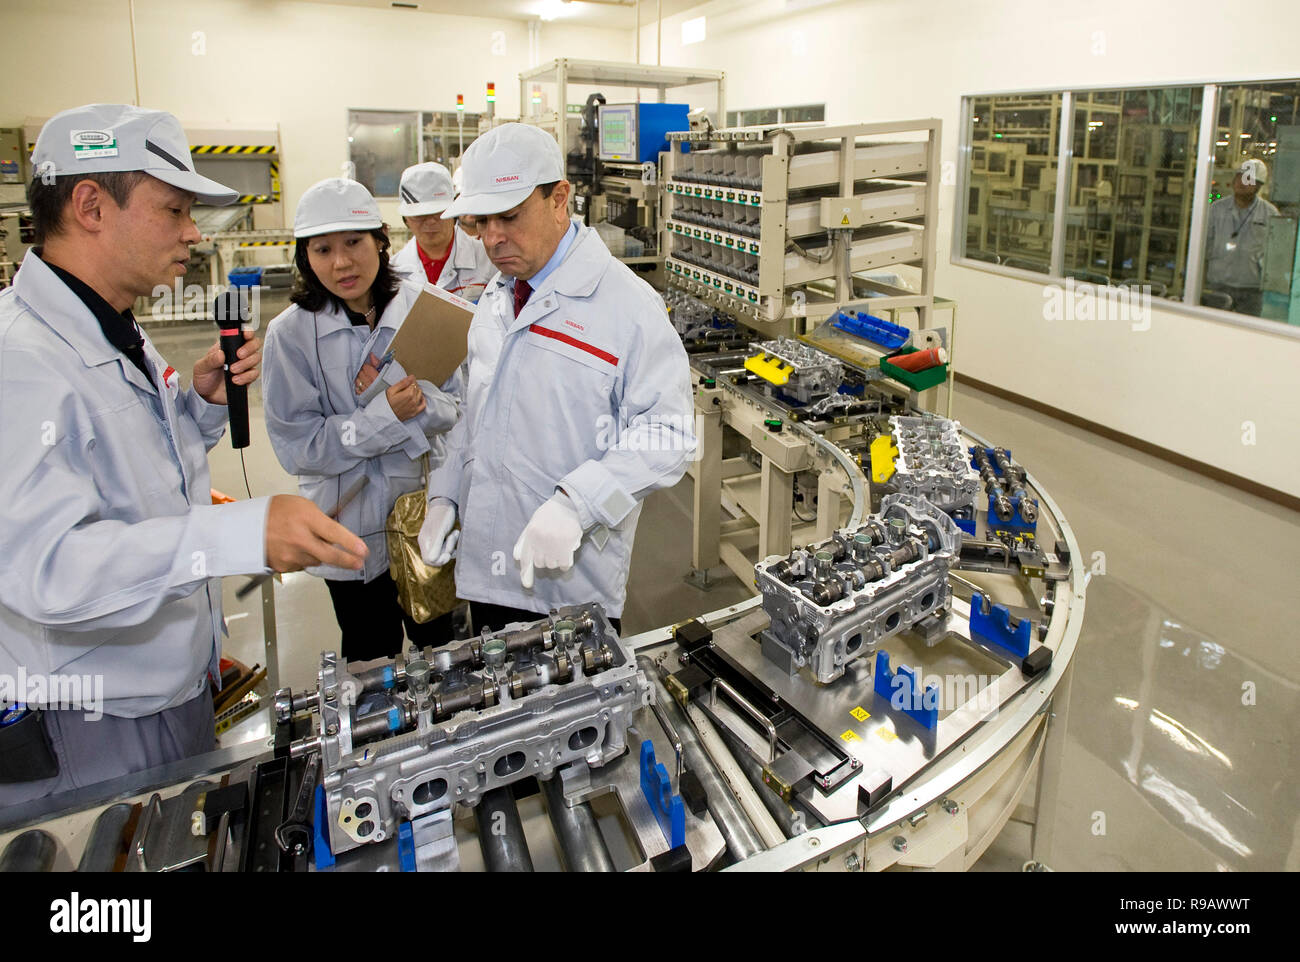 Carlos Ghosn, former president and CEO of Nissan Motor Co., visits a Nissan plant in Oppama, Kanagawa Prefecture, Japan on  22 Oct. 2009. Ghosn, who f - Stock Image